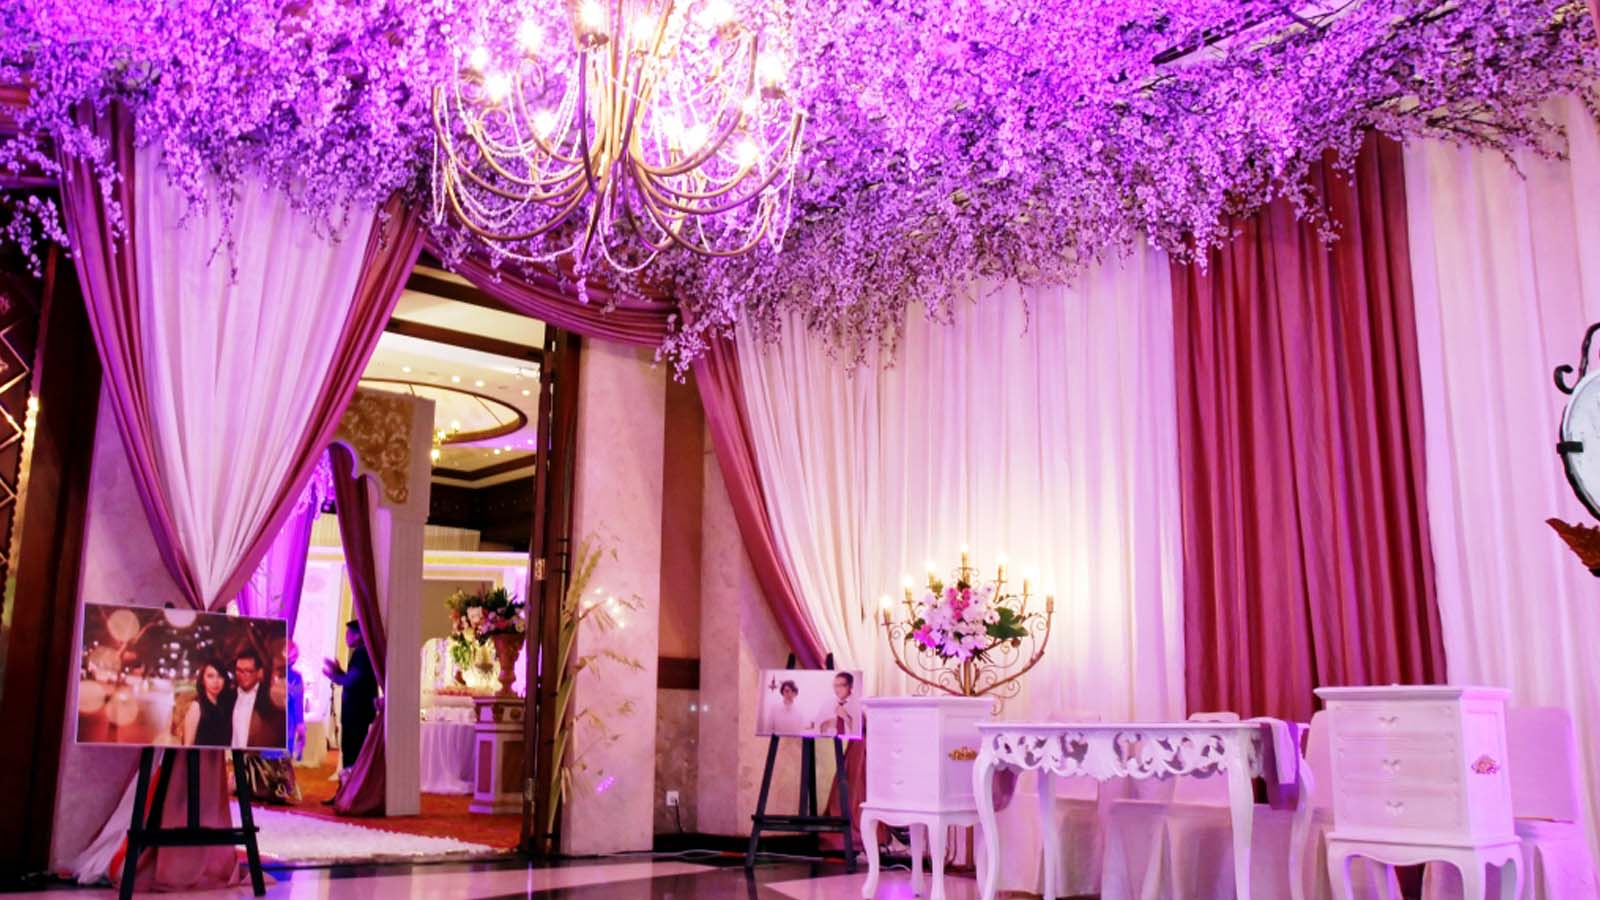 Lavender Wedding Decoration Jakarta - The Best Wedding 2018